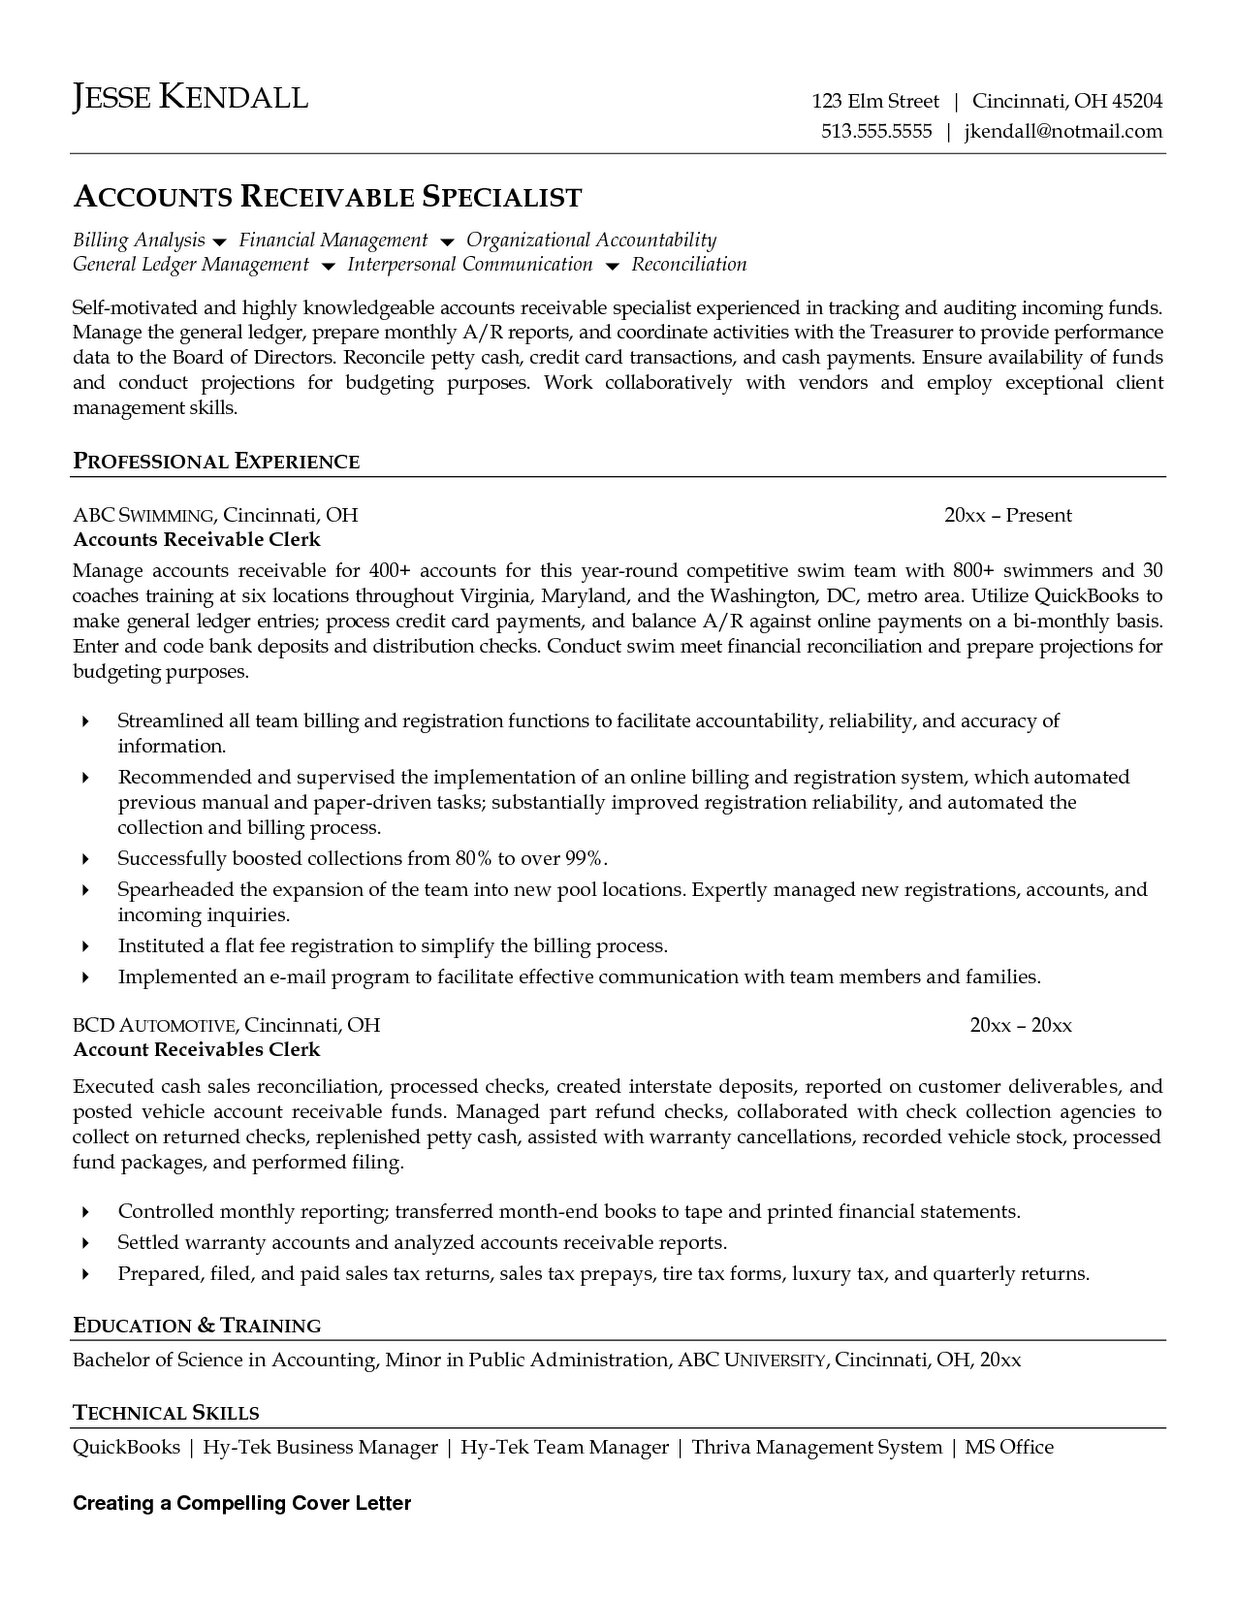 How To Write The Best Resume And Cover Letter Resume And Cover Letter Writing Rubric How To Write The